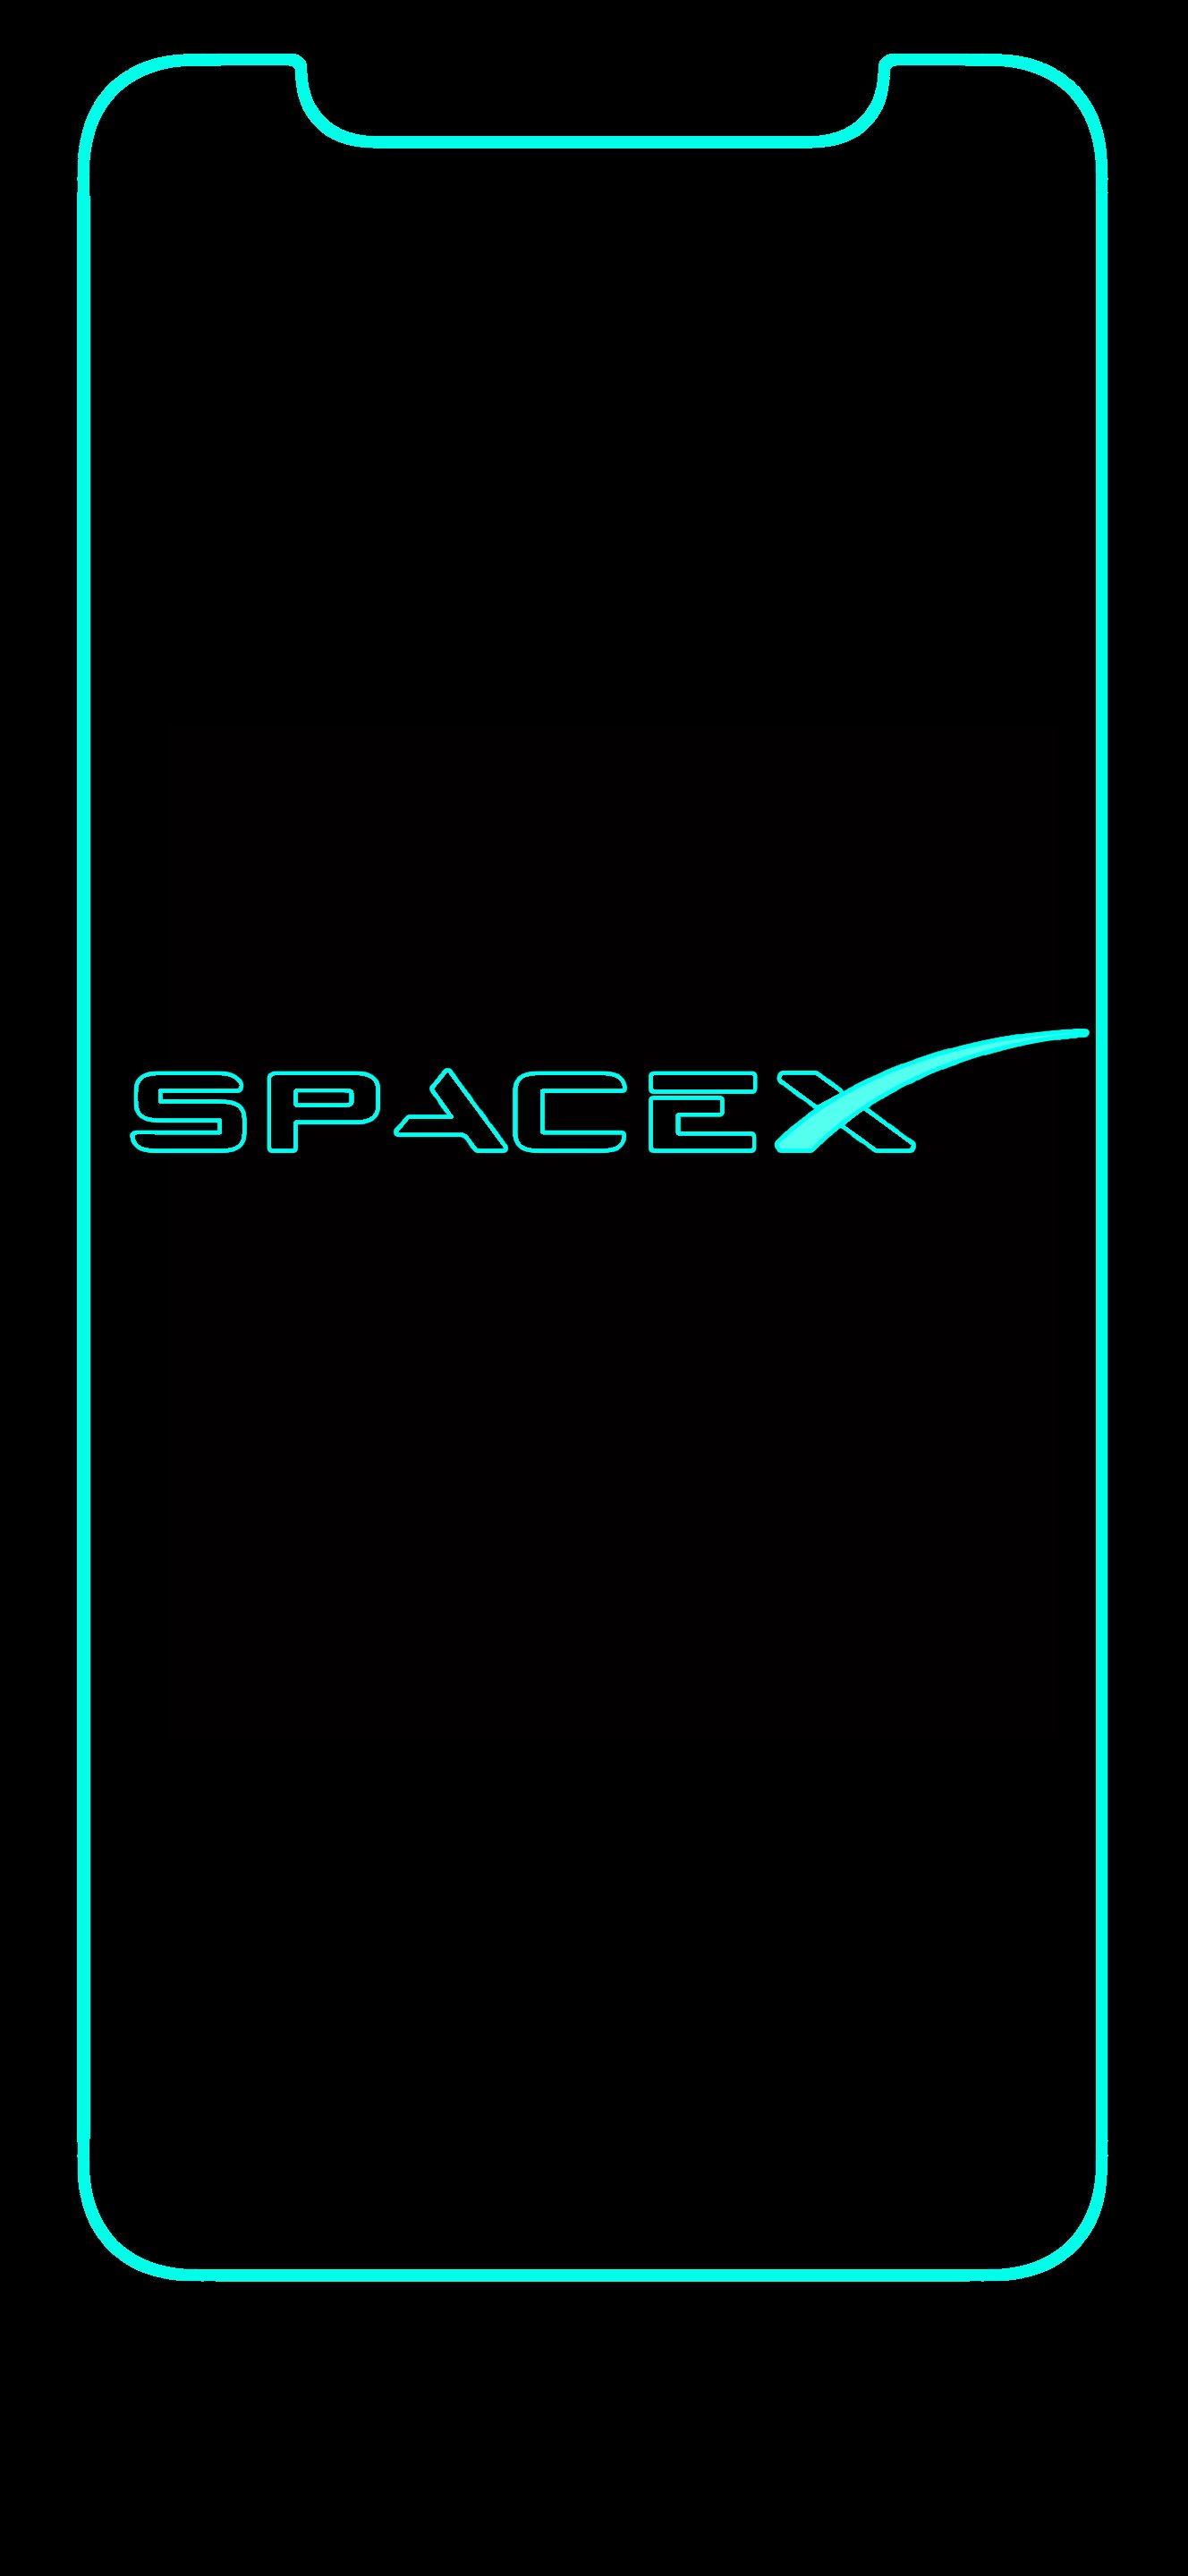 Space X Iphone Wallpaper